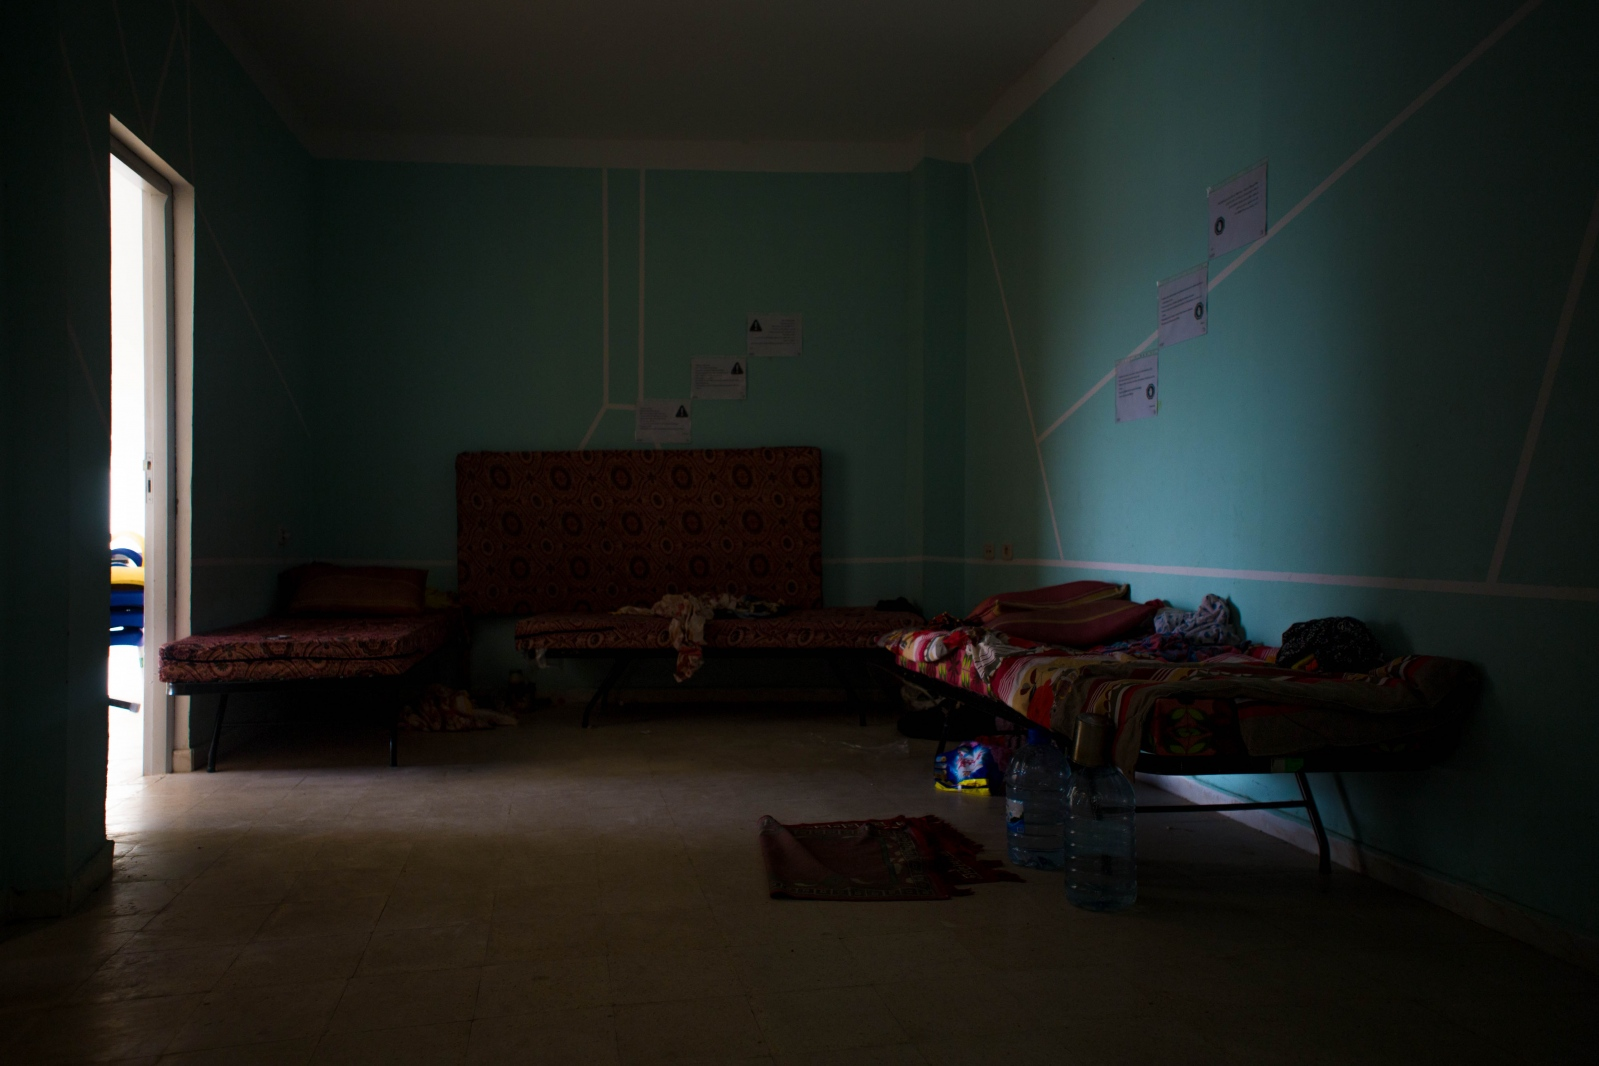 In this migrant shelter in Medenine, Tunisia, run by the Red Crescent and IOM, all were detained in Libyatheir home in Medenine, in southern Tunisia. isolation, deplorable food and health conditions